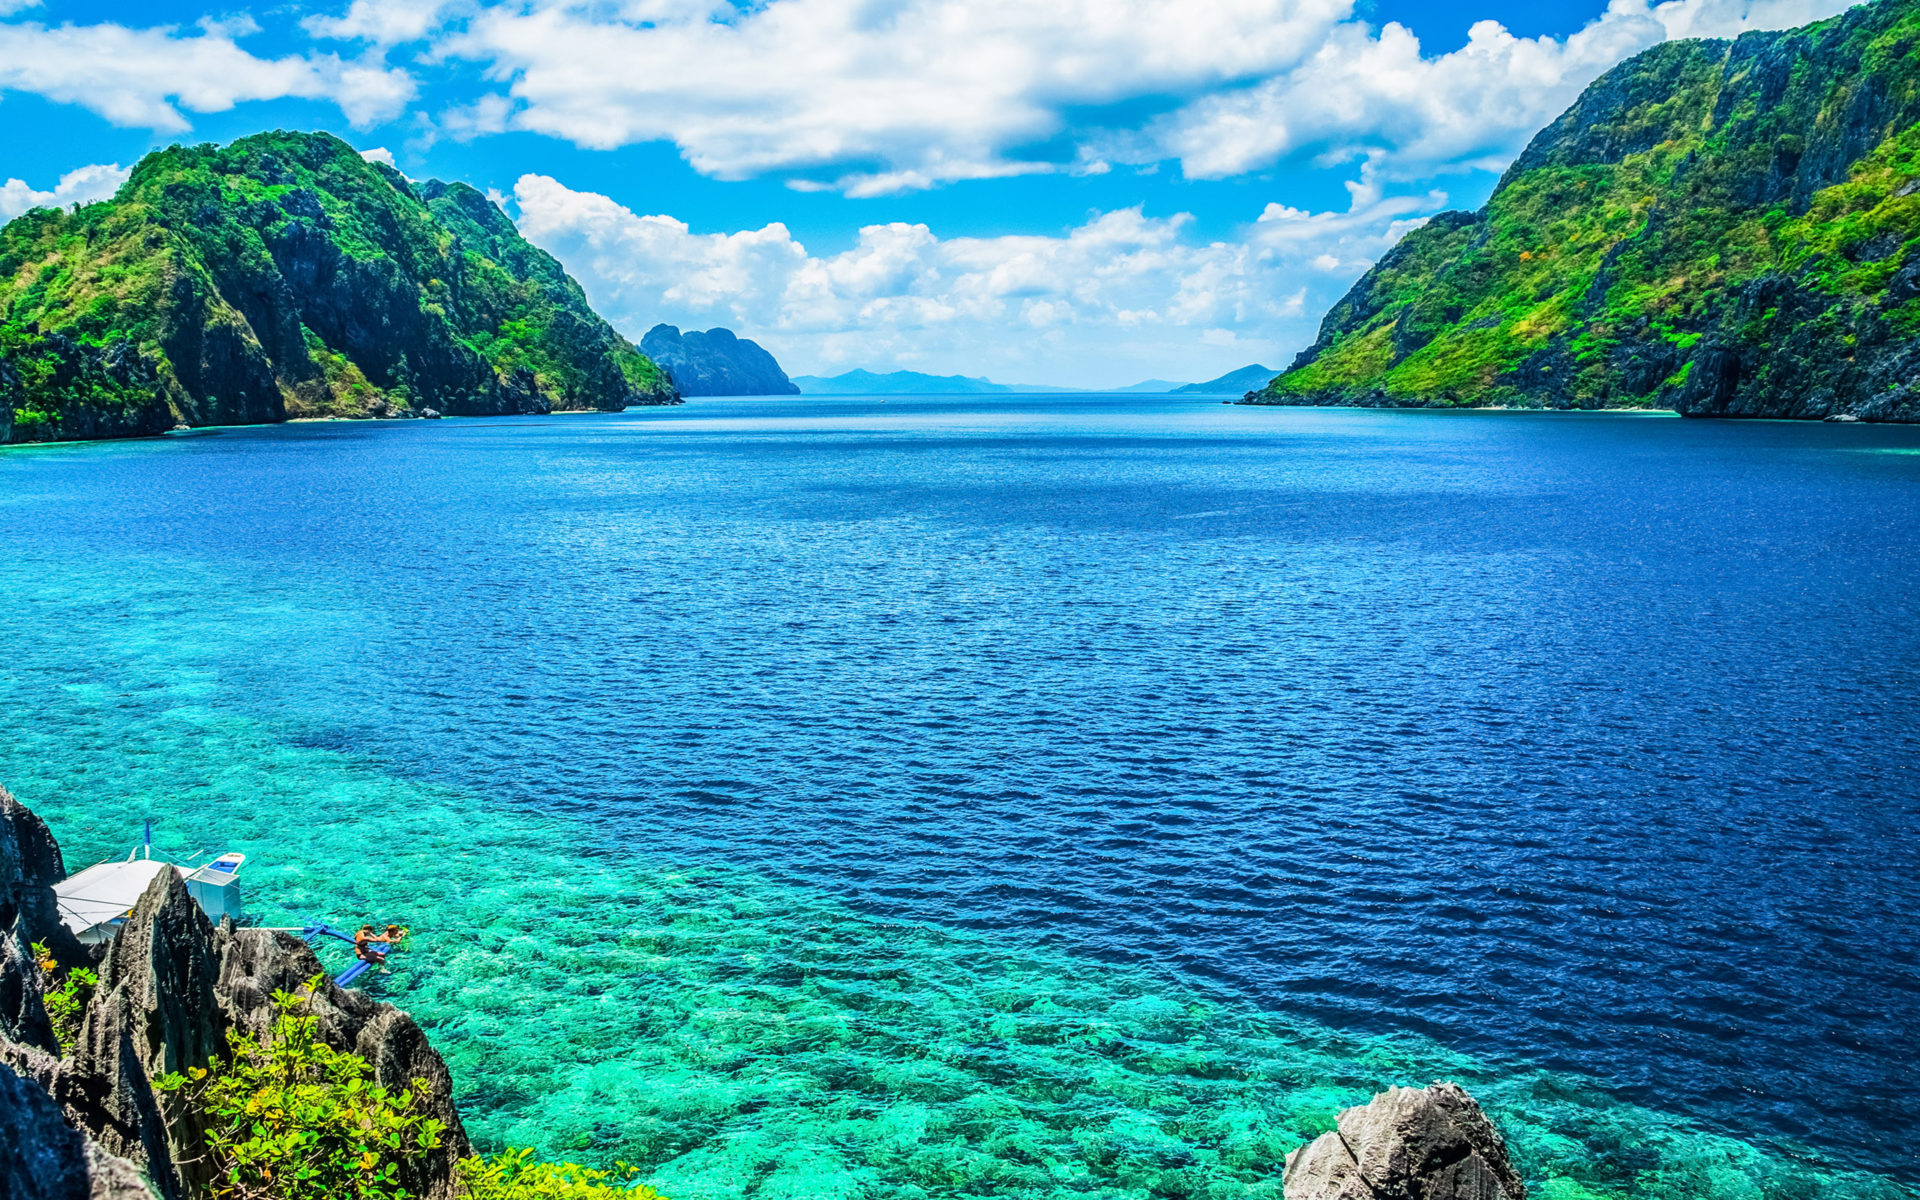 Pc Hd Car Wallpapers Free Download Palawan Philippines A Scenic View Of The Sea And Mountain